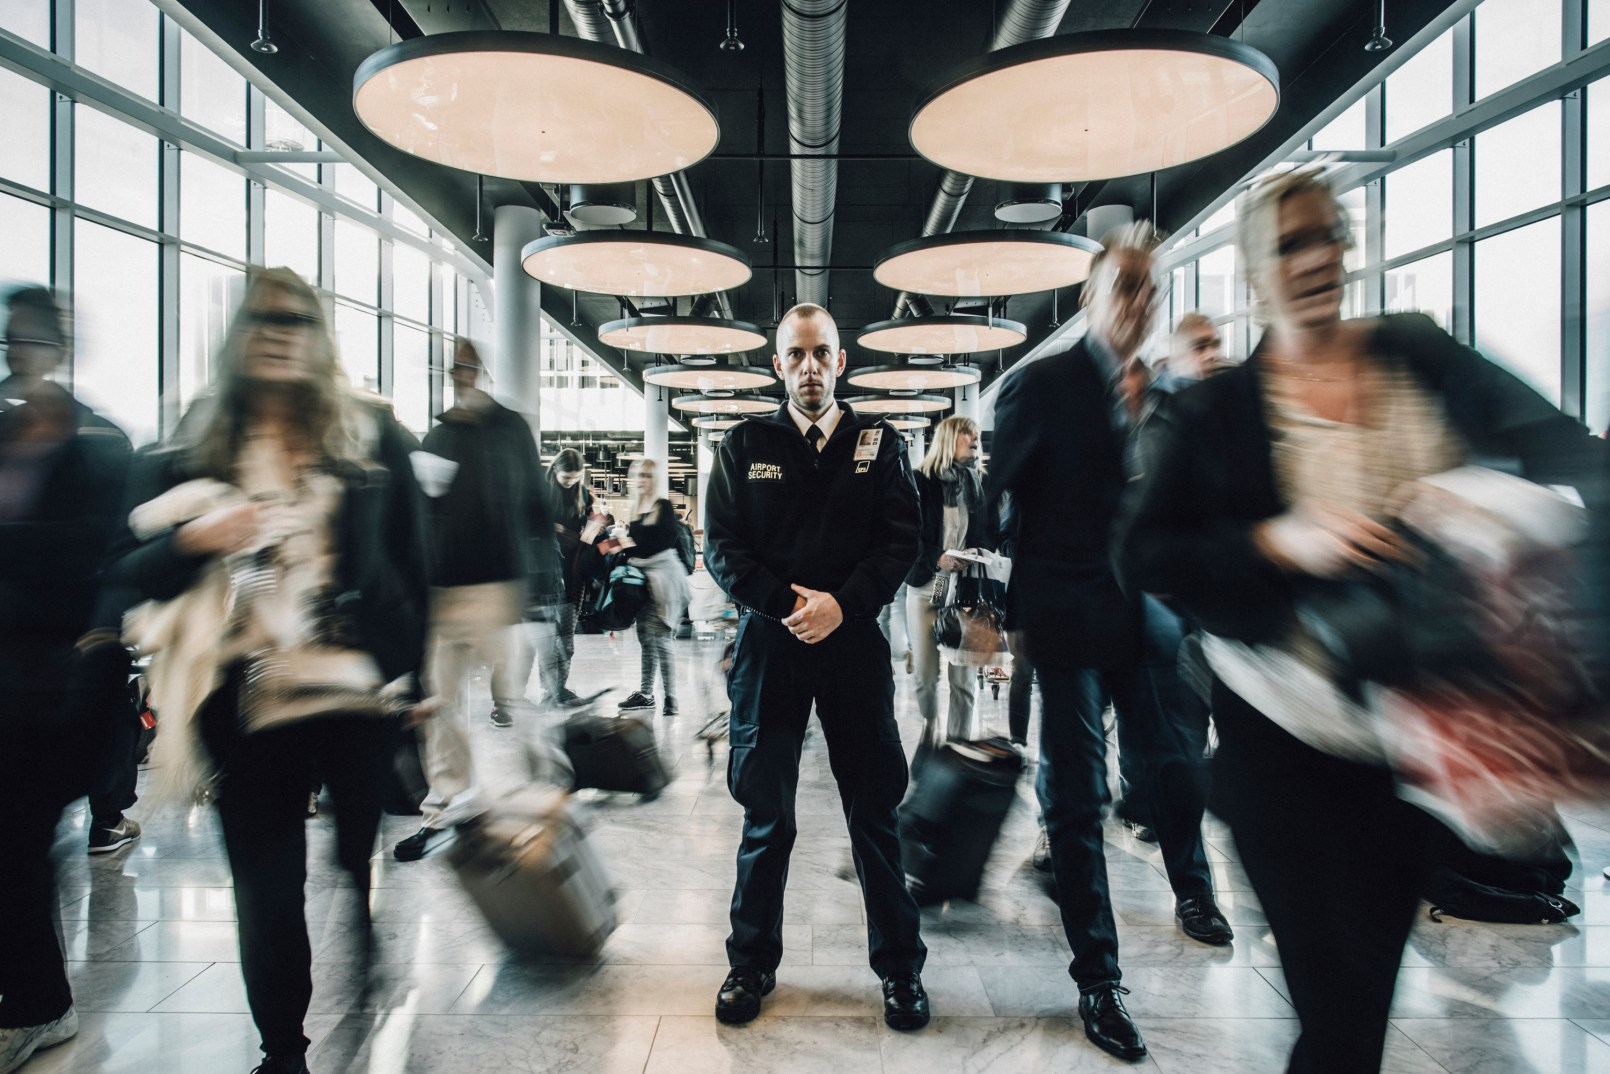 """I always call my father when I have brought someone back to life. Thomas Pærregaard, 31, a security guard at Copenhagen Airport. On one of his guard rounds in the airport terminal he suddenly hears a strange 'plump!' sound. Behind him, an older man has fallen to the ground. Thomas instinctively runs towards the man, at the same time alarming the airport rescue team and pulling down the AED from the wall. """"As a security guard I am trained to provide first aid. I knew immediately that the man had a sudden cardiac arrest. You can often see by the way the mouth opens and closes, after which the tongue moves back and forth. I laid him on his back, secured him free airways, tore open his shirt, switched the AED on and attached the pads on his chest. Three of my colleagues came in the same second. The AED guided us. It starts immediately to give you a series of visual and verbal prompts informing you of what you need to do. You can't jolt too much or wrong. It is important to remember. In that way the AED is a great help in a difficult situation. A colleague checked the man's wallet. People feel more secure when they wake up after a sudden cardiac arrest if they are addressed by their name. His name was Per and he was 60 years old. Later when I drove home, I called my father. I always do when I have brought someone back to life. I don't expect any thanks. But I am proud when I have made a difference."""""""